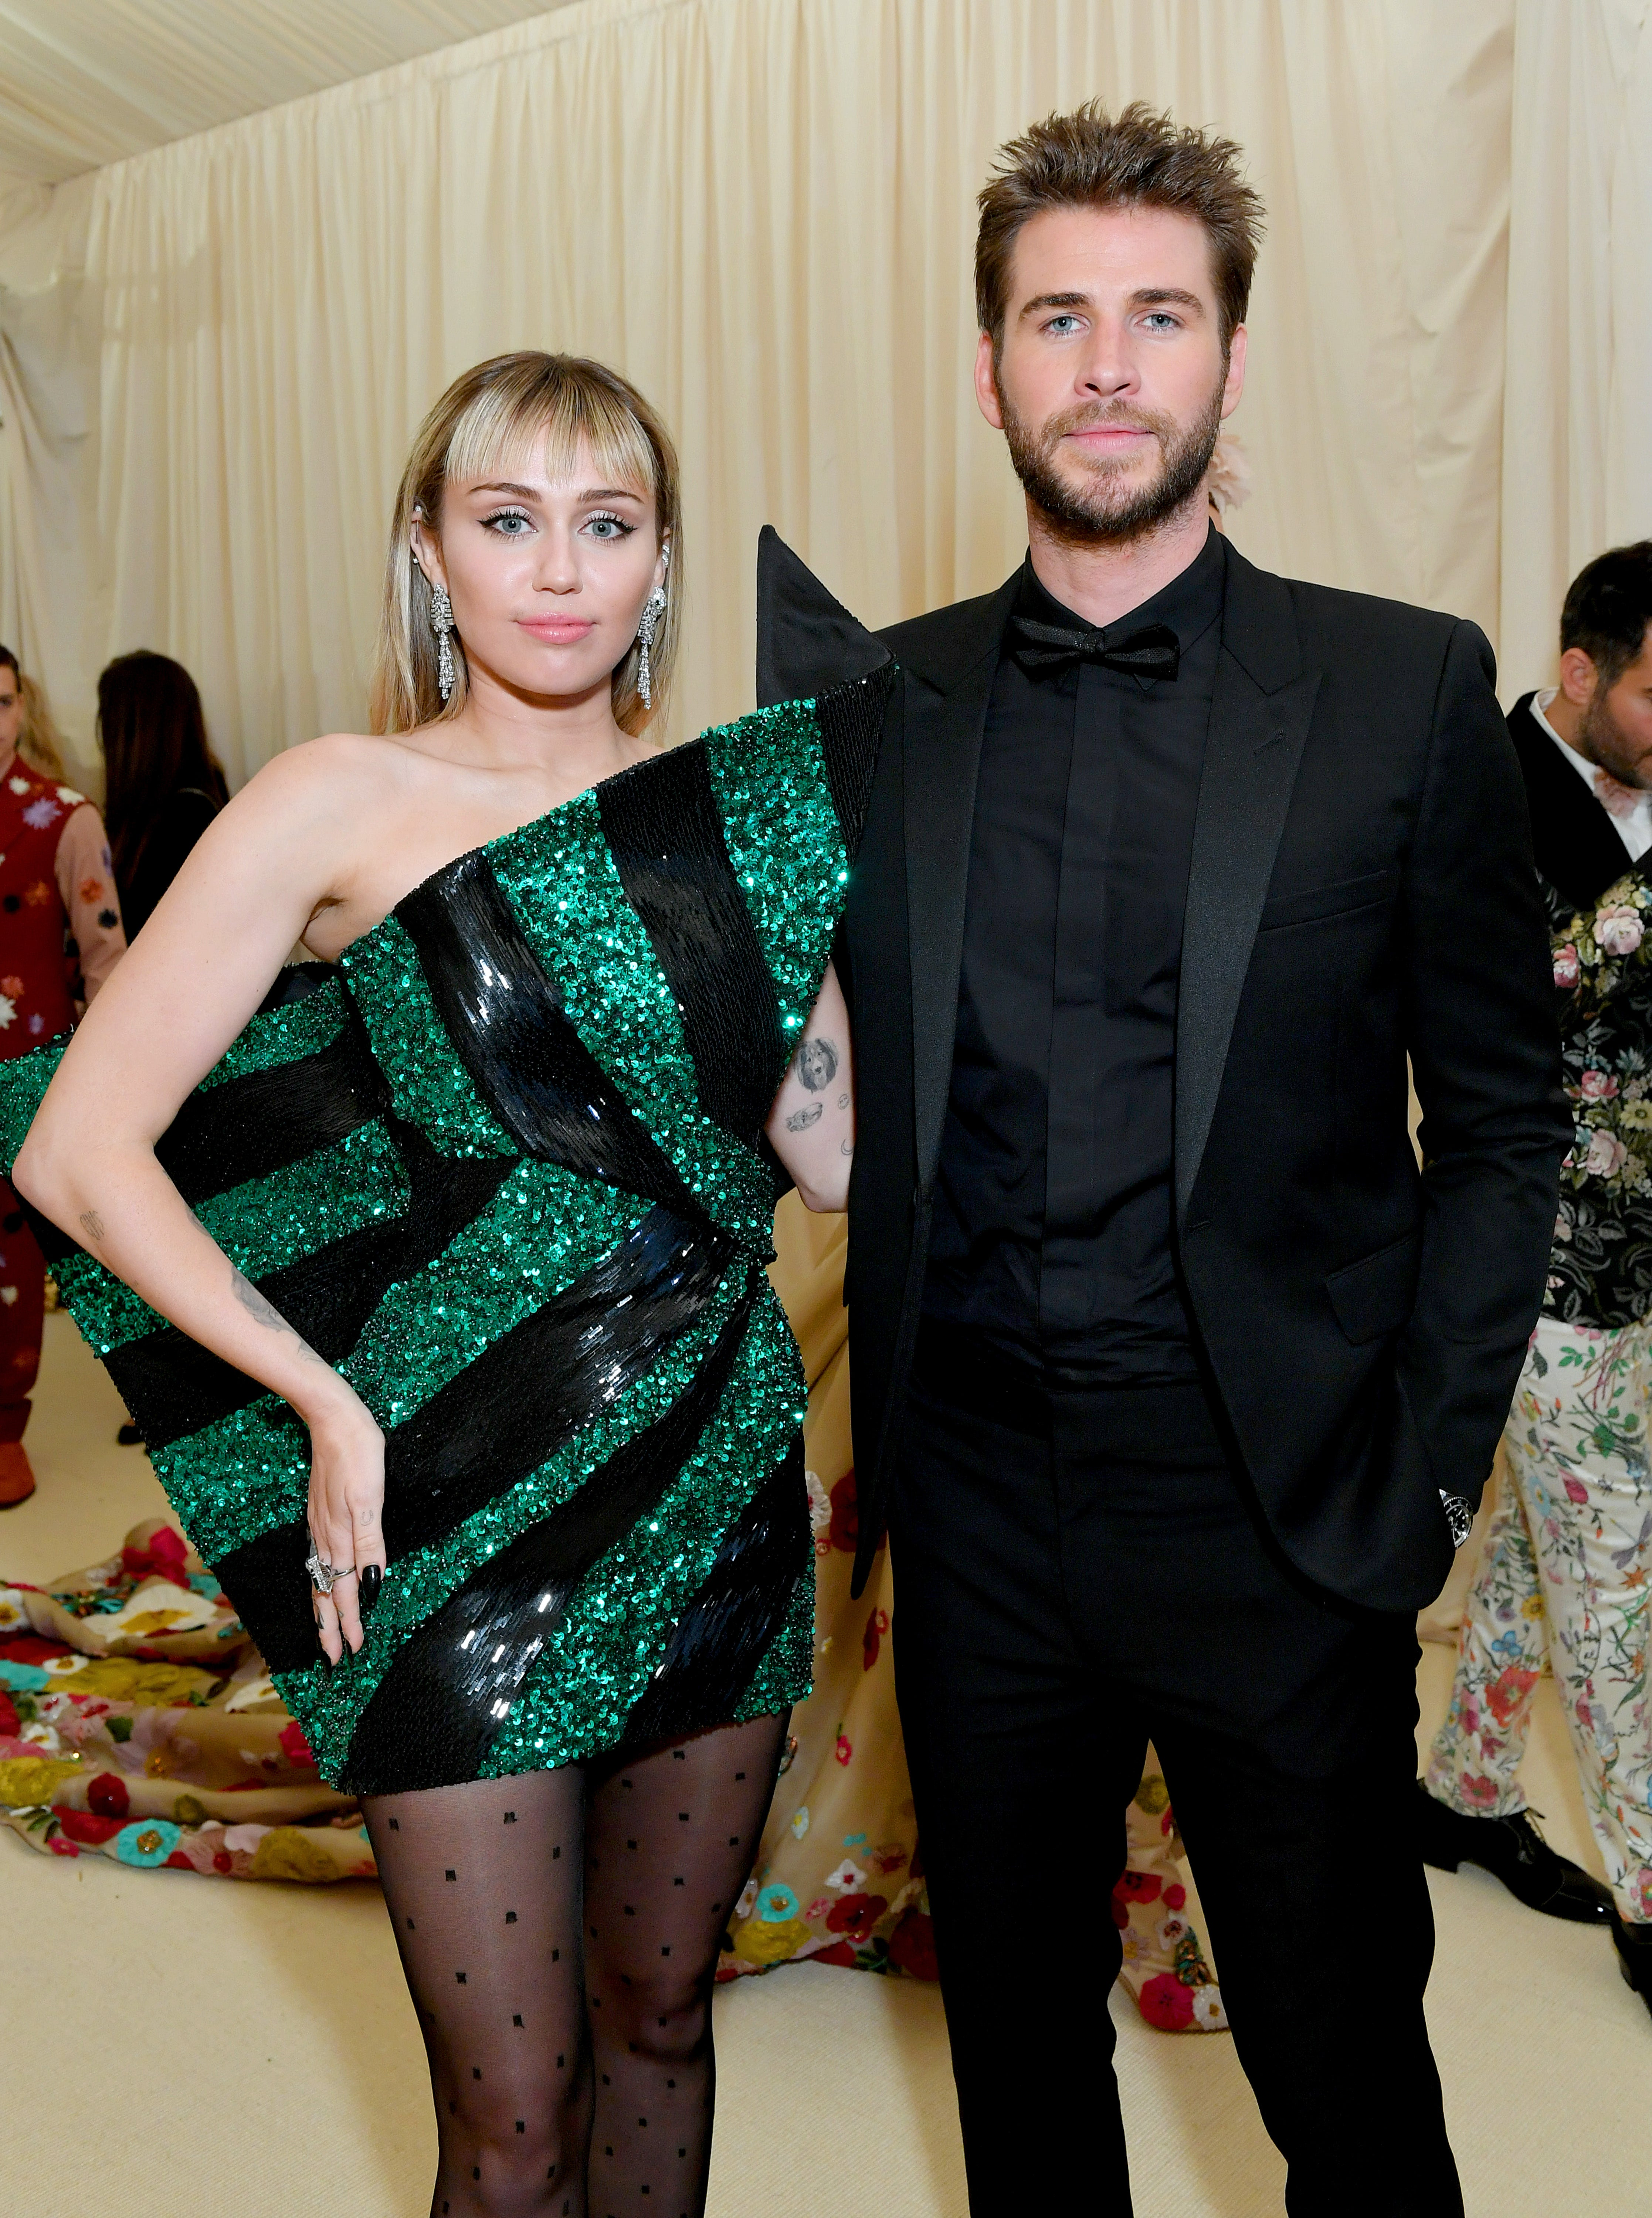 Liam Hemsworth's Sister-In-Law Said Some Harsh Words About Miley Cyrus